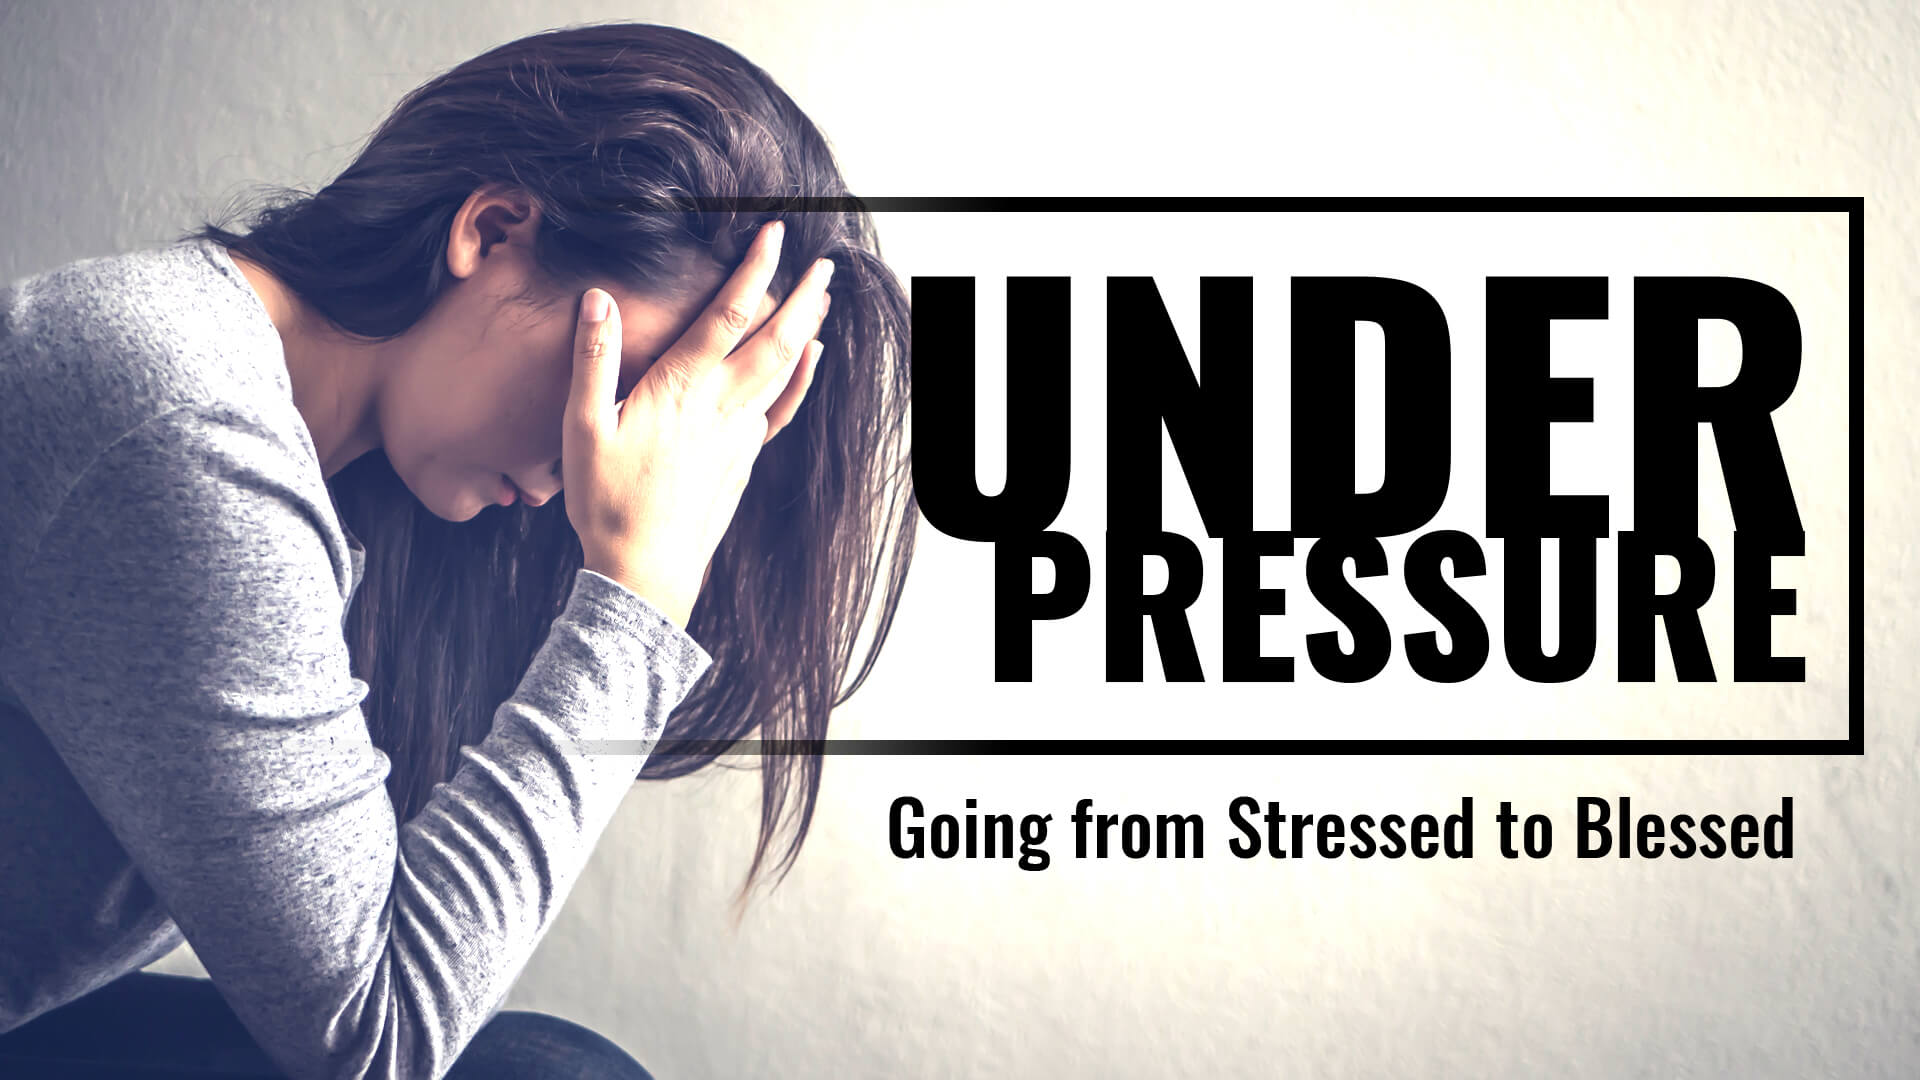 Under Pressure: Going from Stressed to Blessed